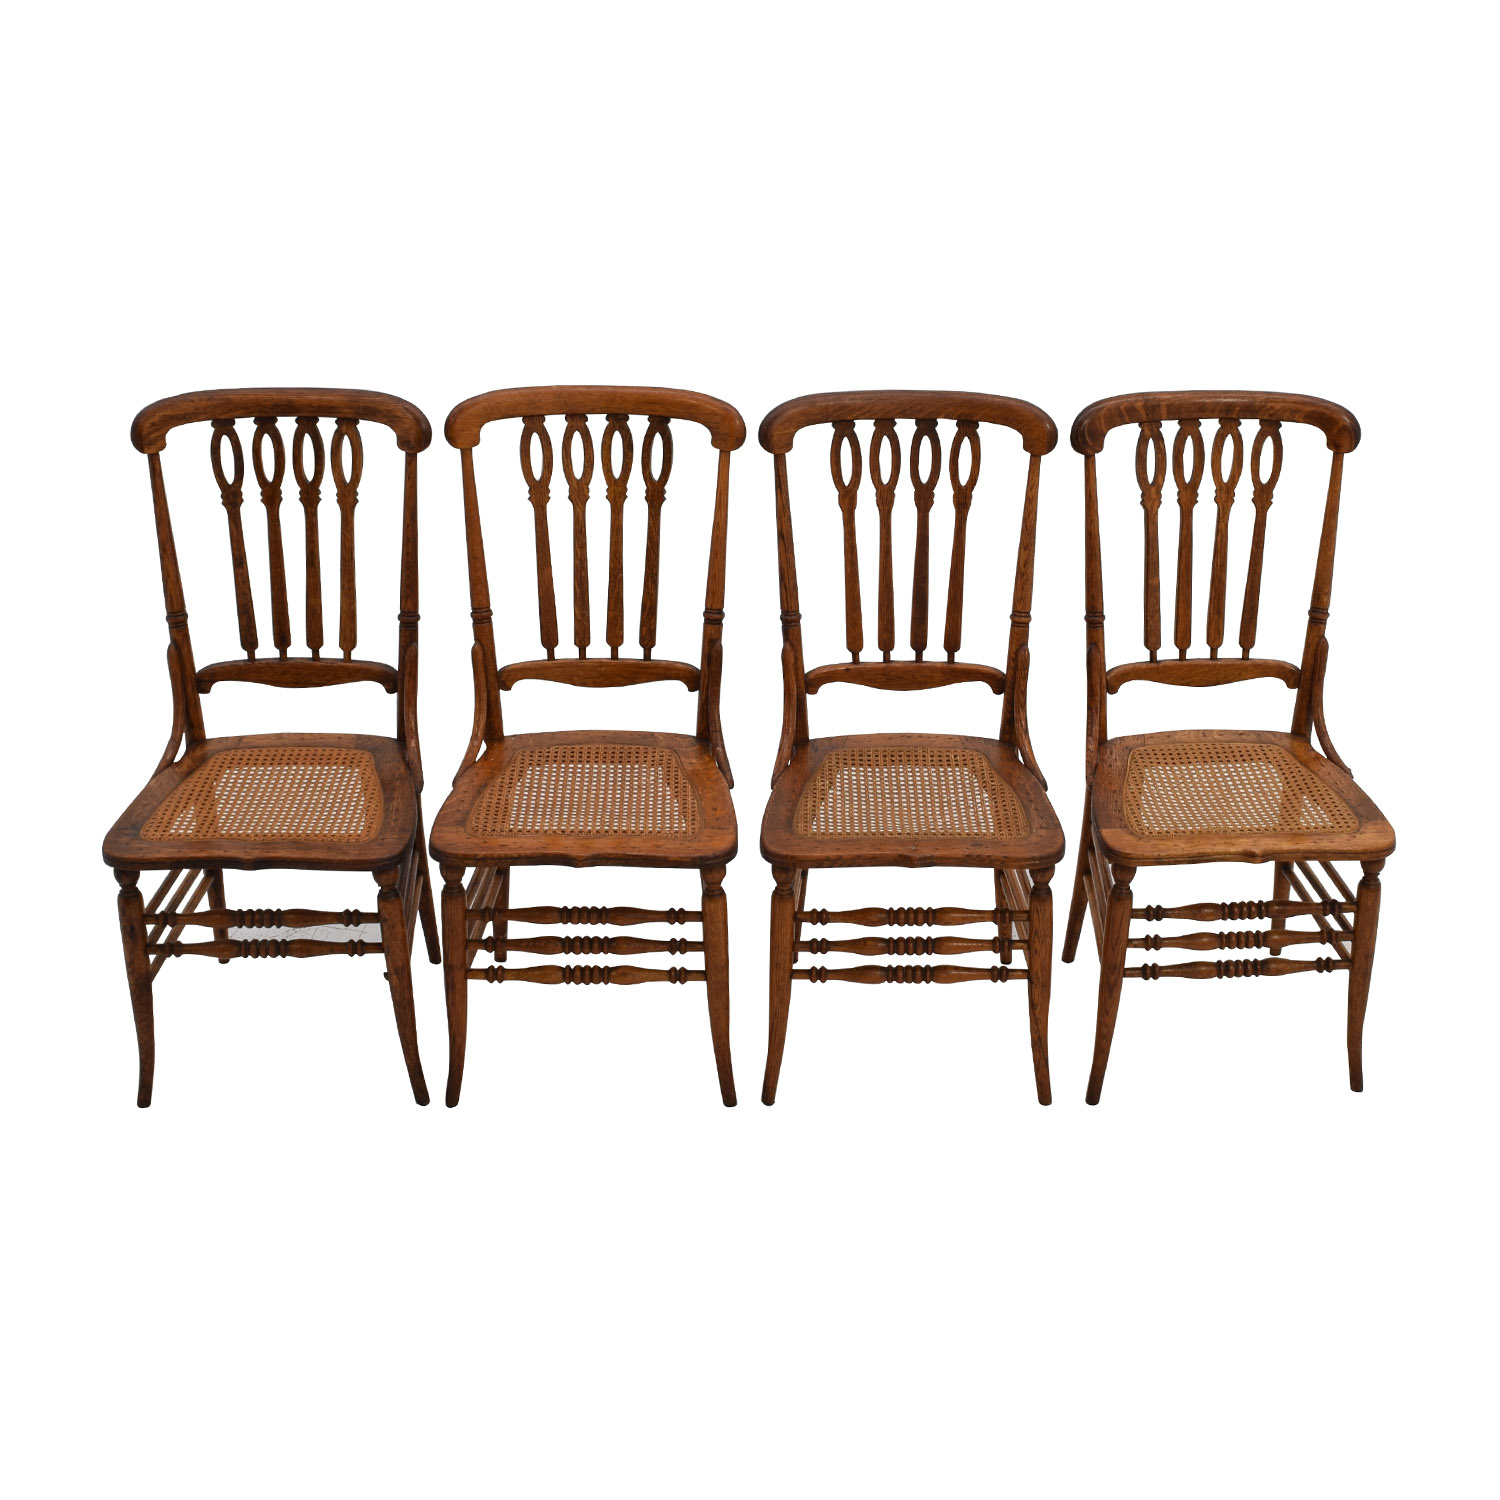 shop Antique Cane Weaved Wood Dining Chairs